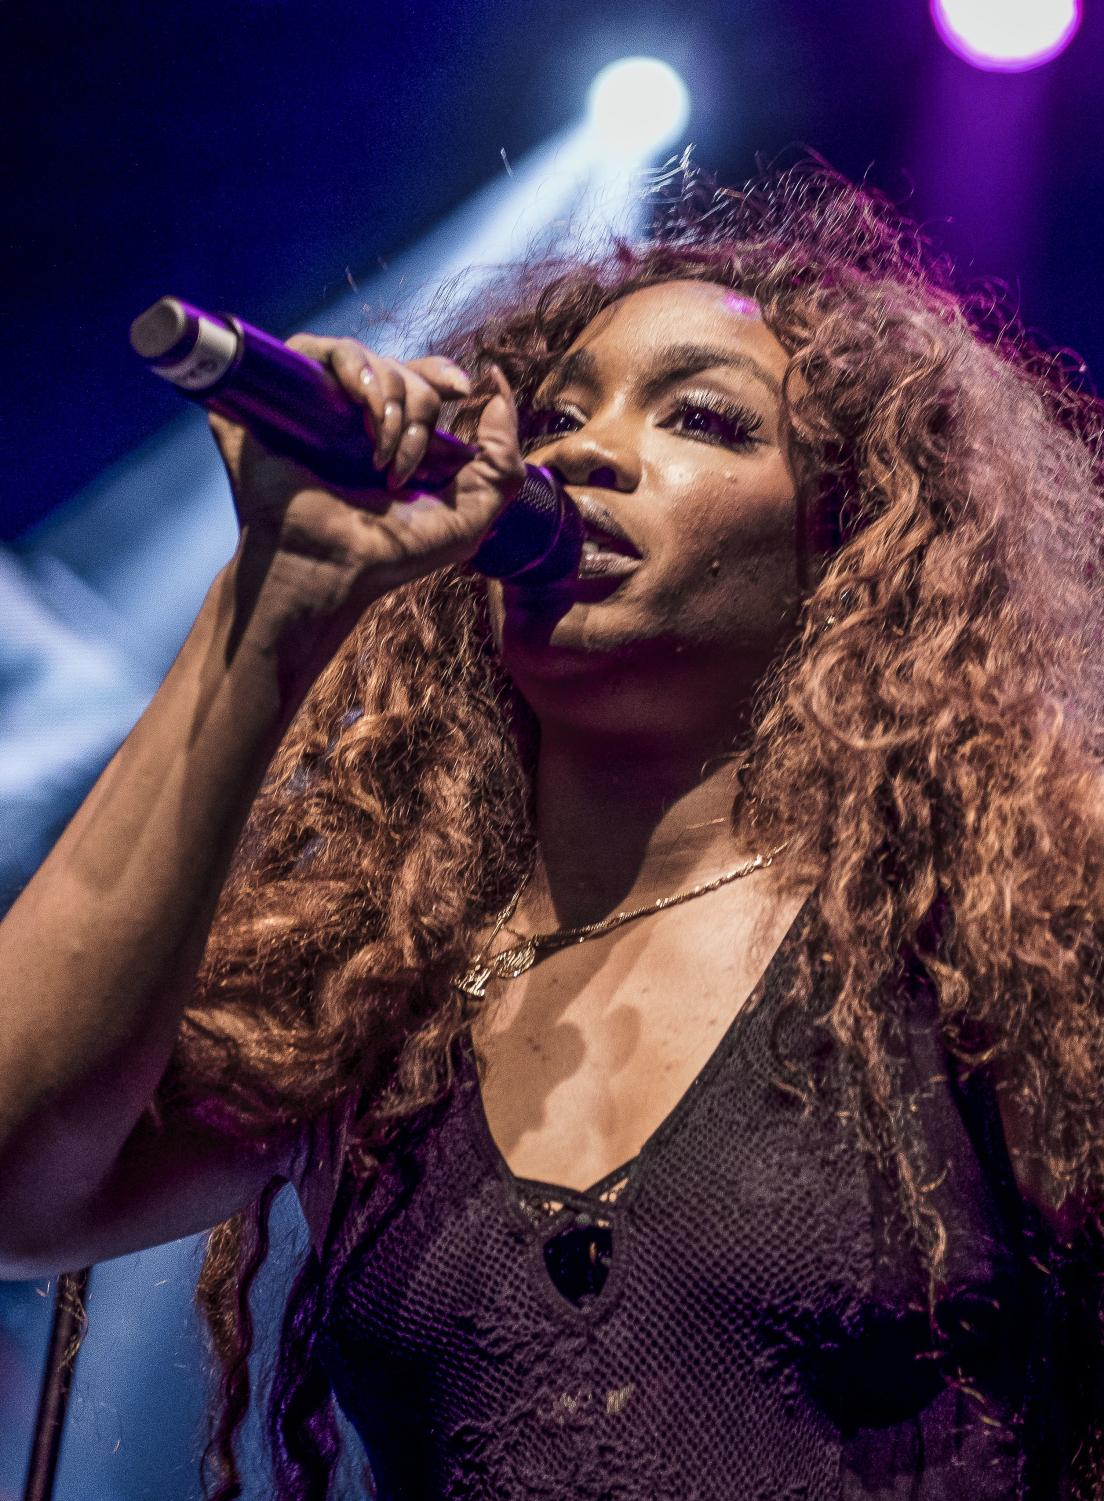 SZA performing during her CTRL tour at REBEL in Toronto on August 23, 2017.